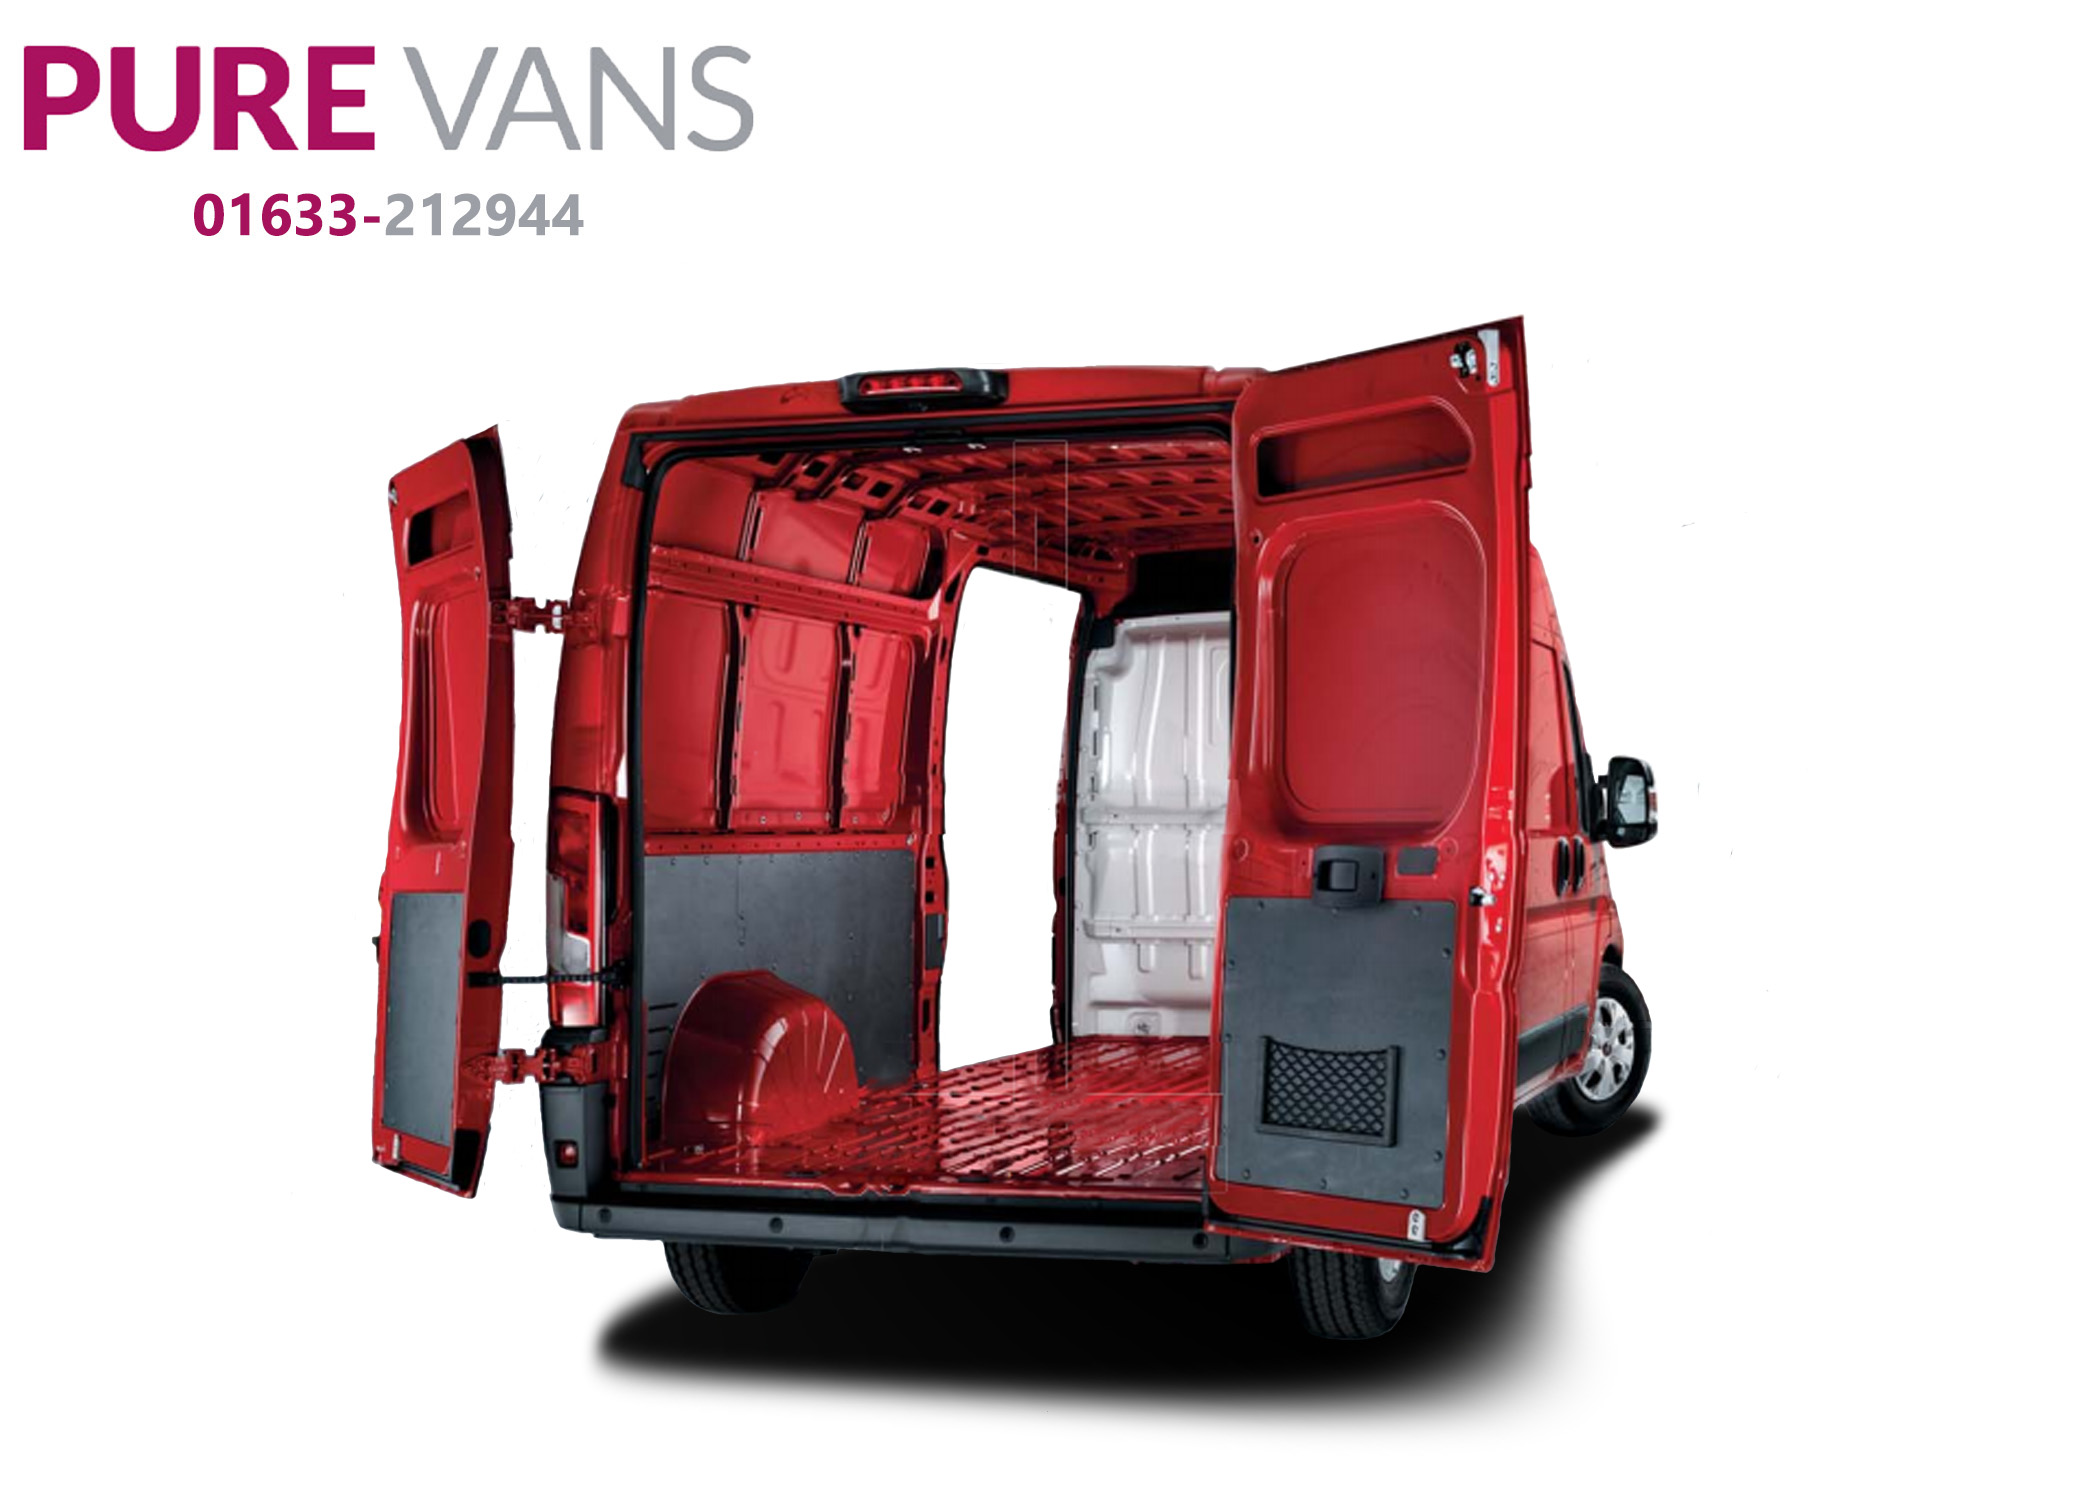 Fiat Ducato Load Space.jpg